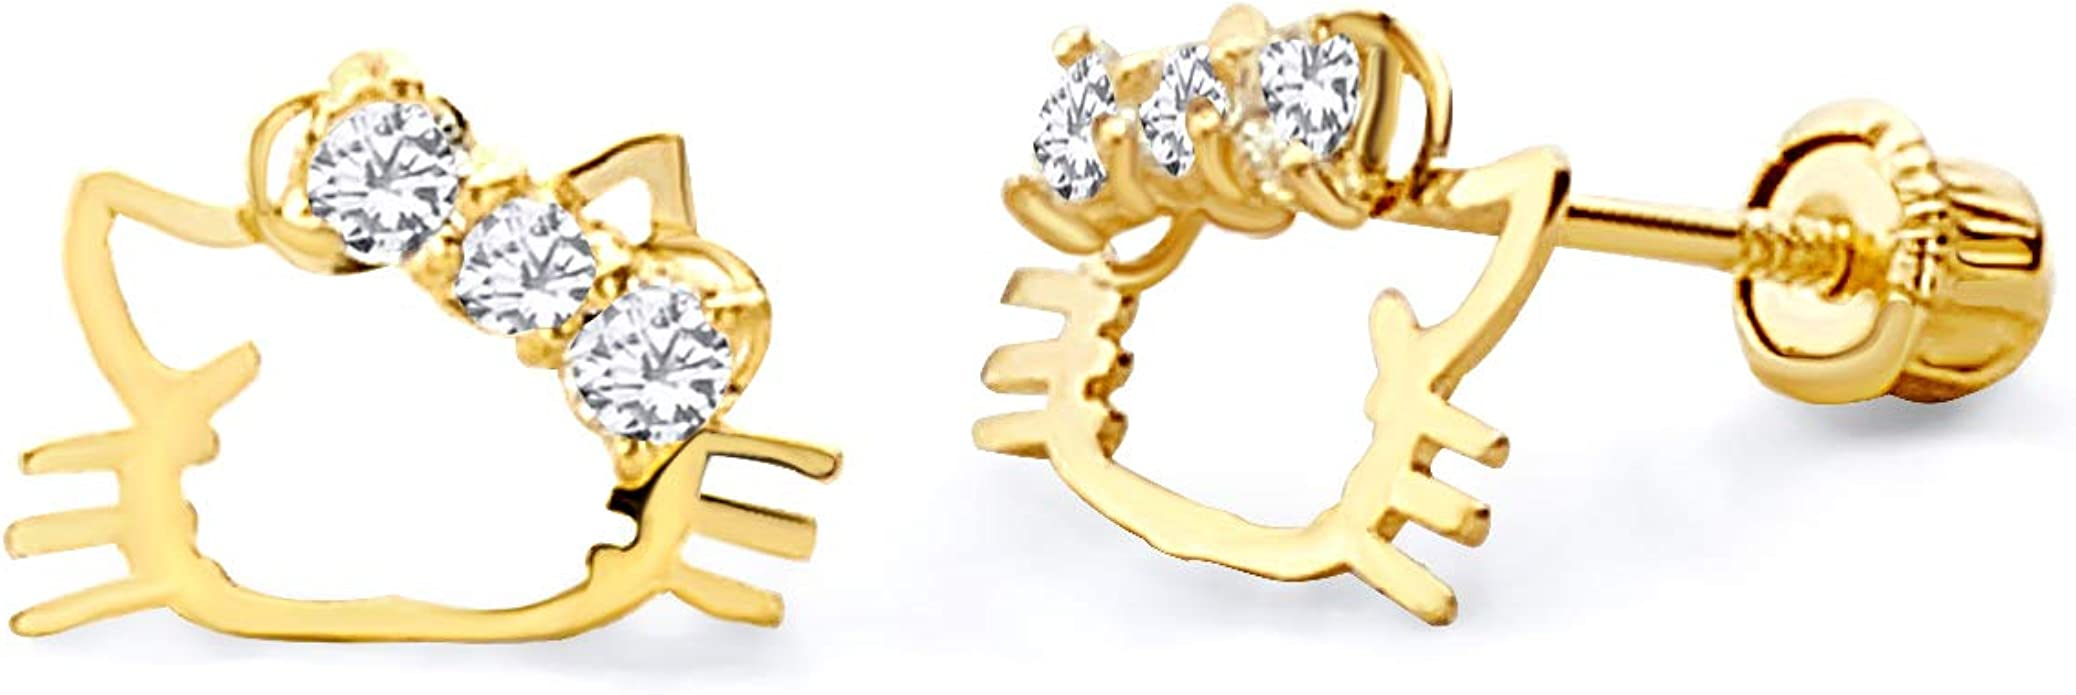 Wellingsale 14K Yellow Gold Polished Cat Stud Earrings With Screw Back